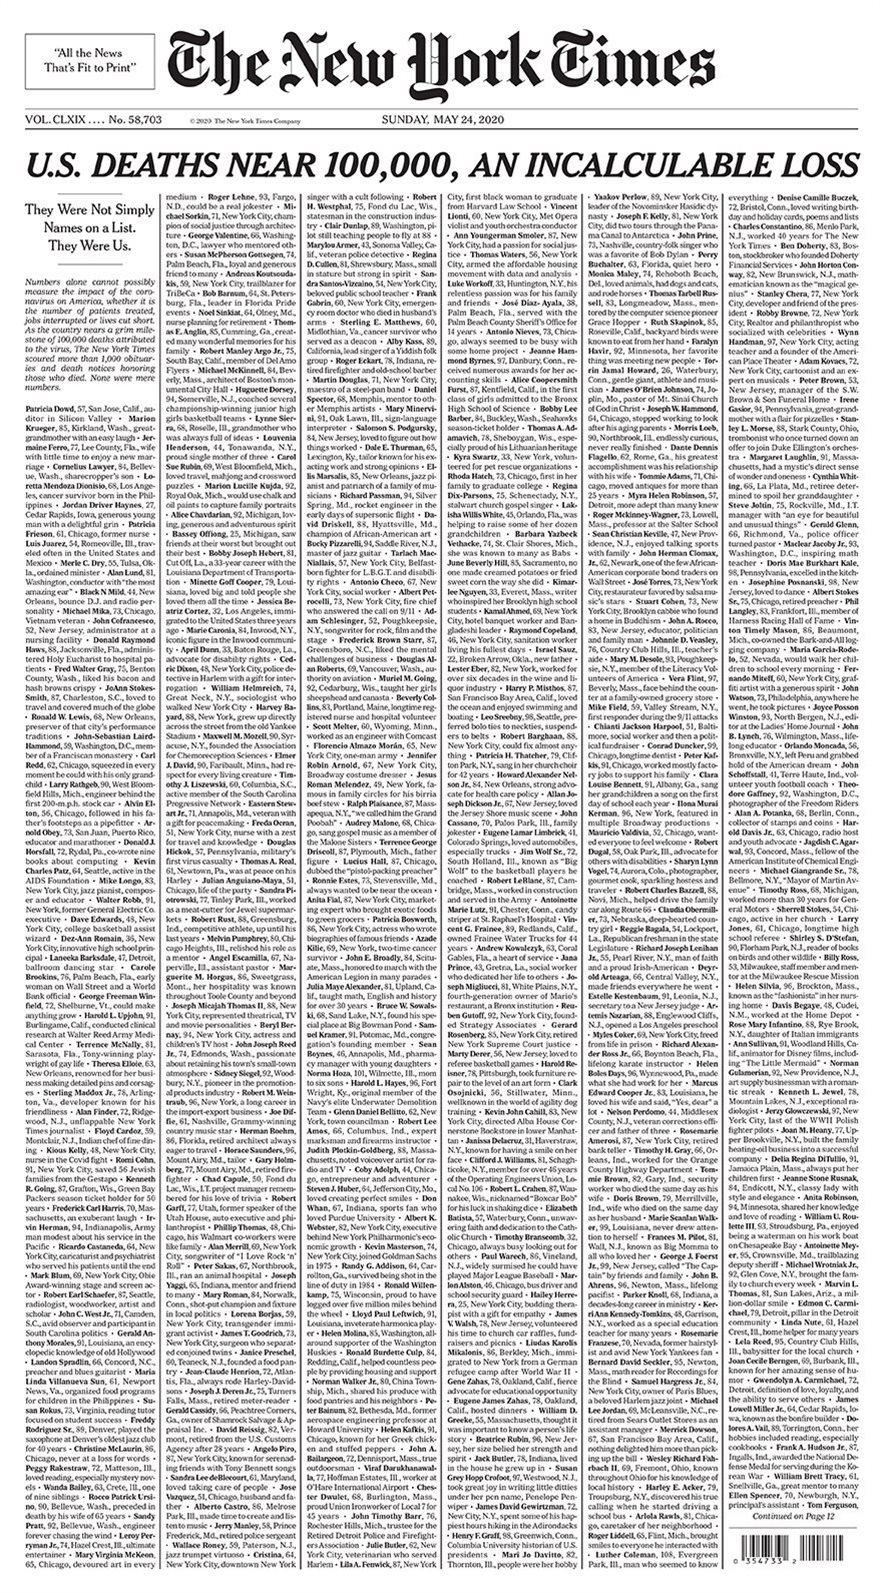 nytimes543